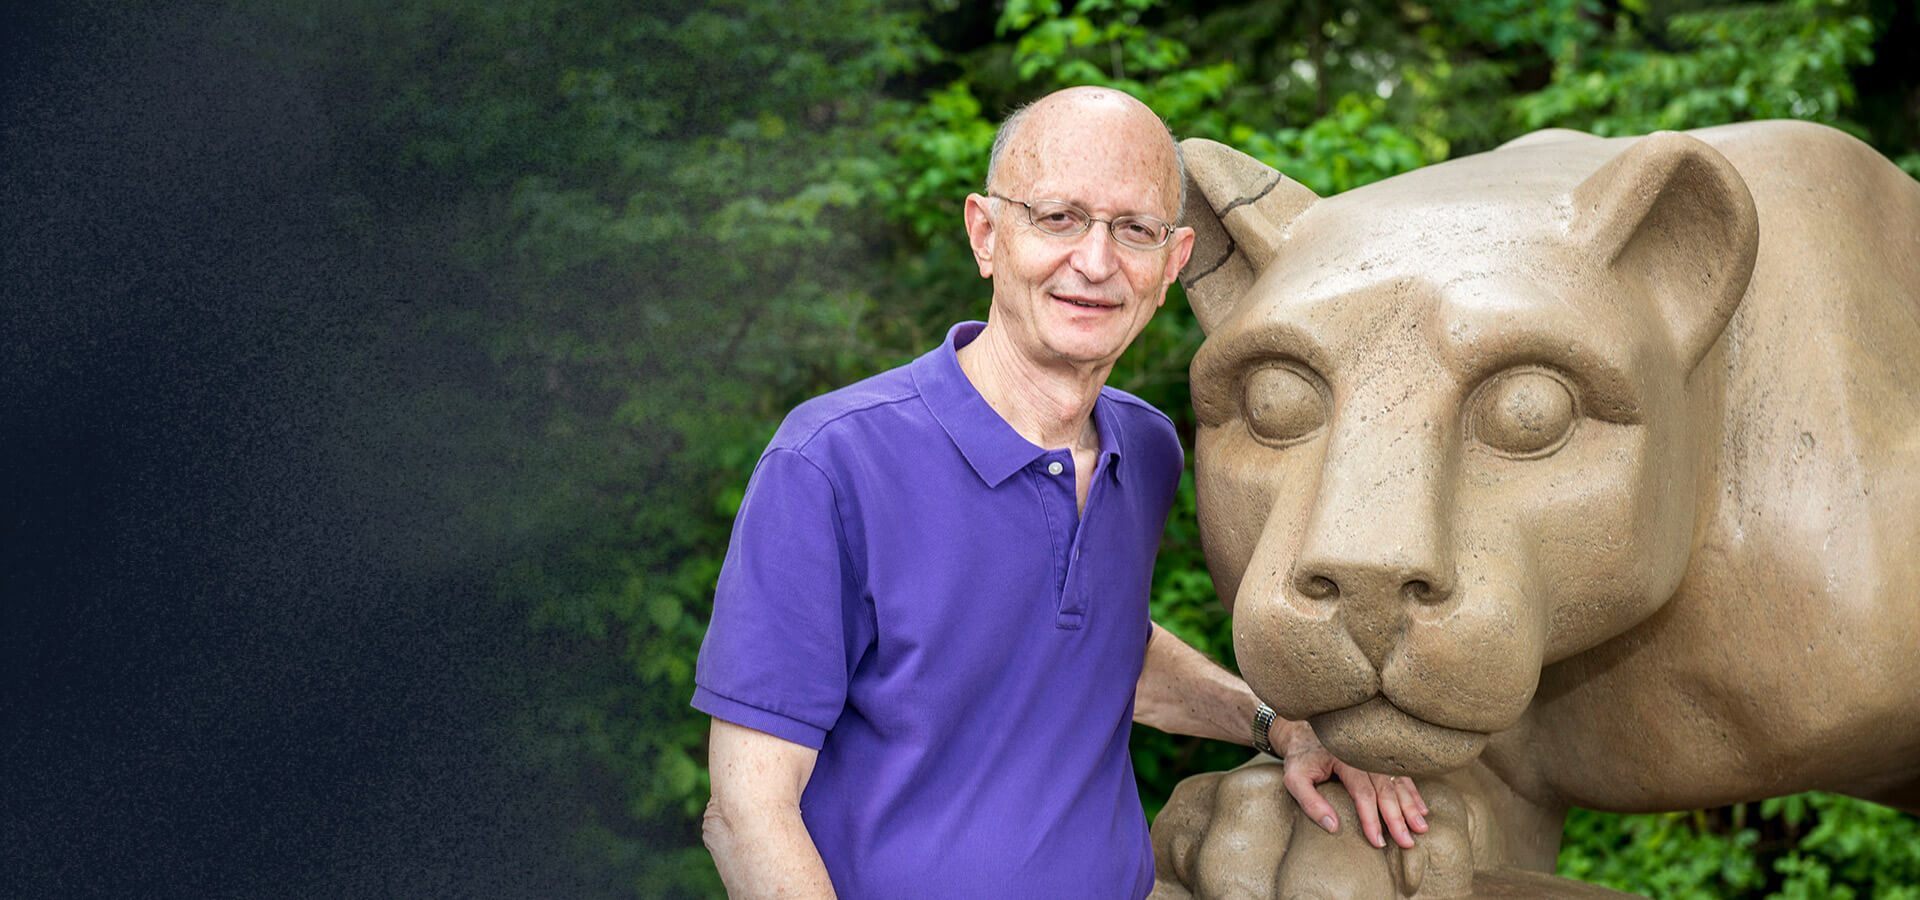 History alumnus finds meaning in giving